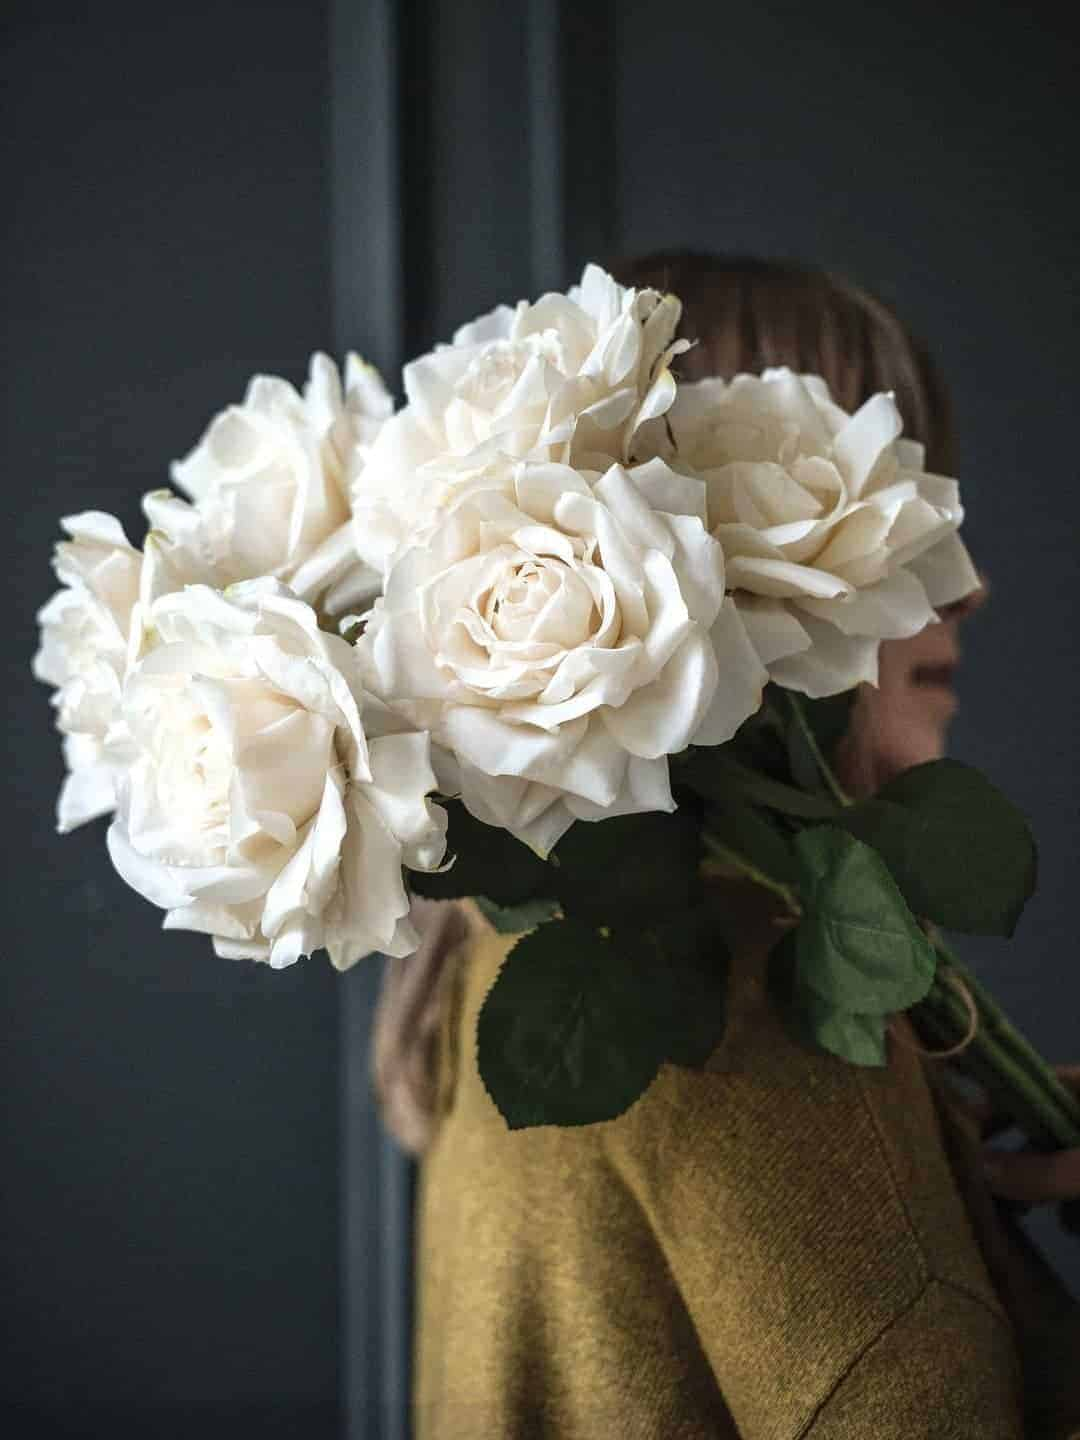 love these faux white old fashioned cabbage roses by phlippa craddock. Click through to find out more and to see other beautiful spring flower ideas you'll love